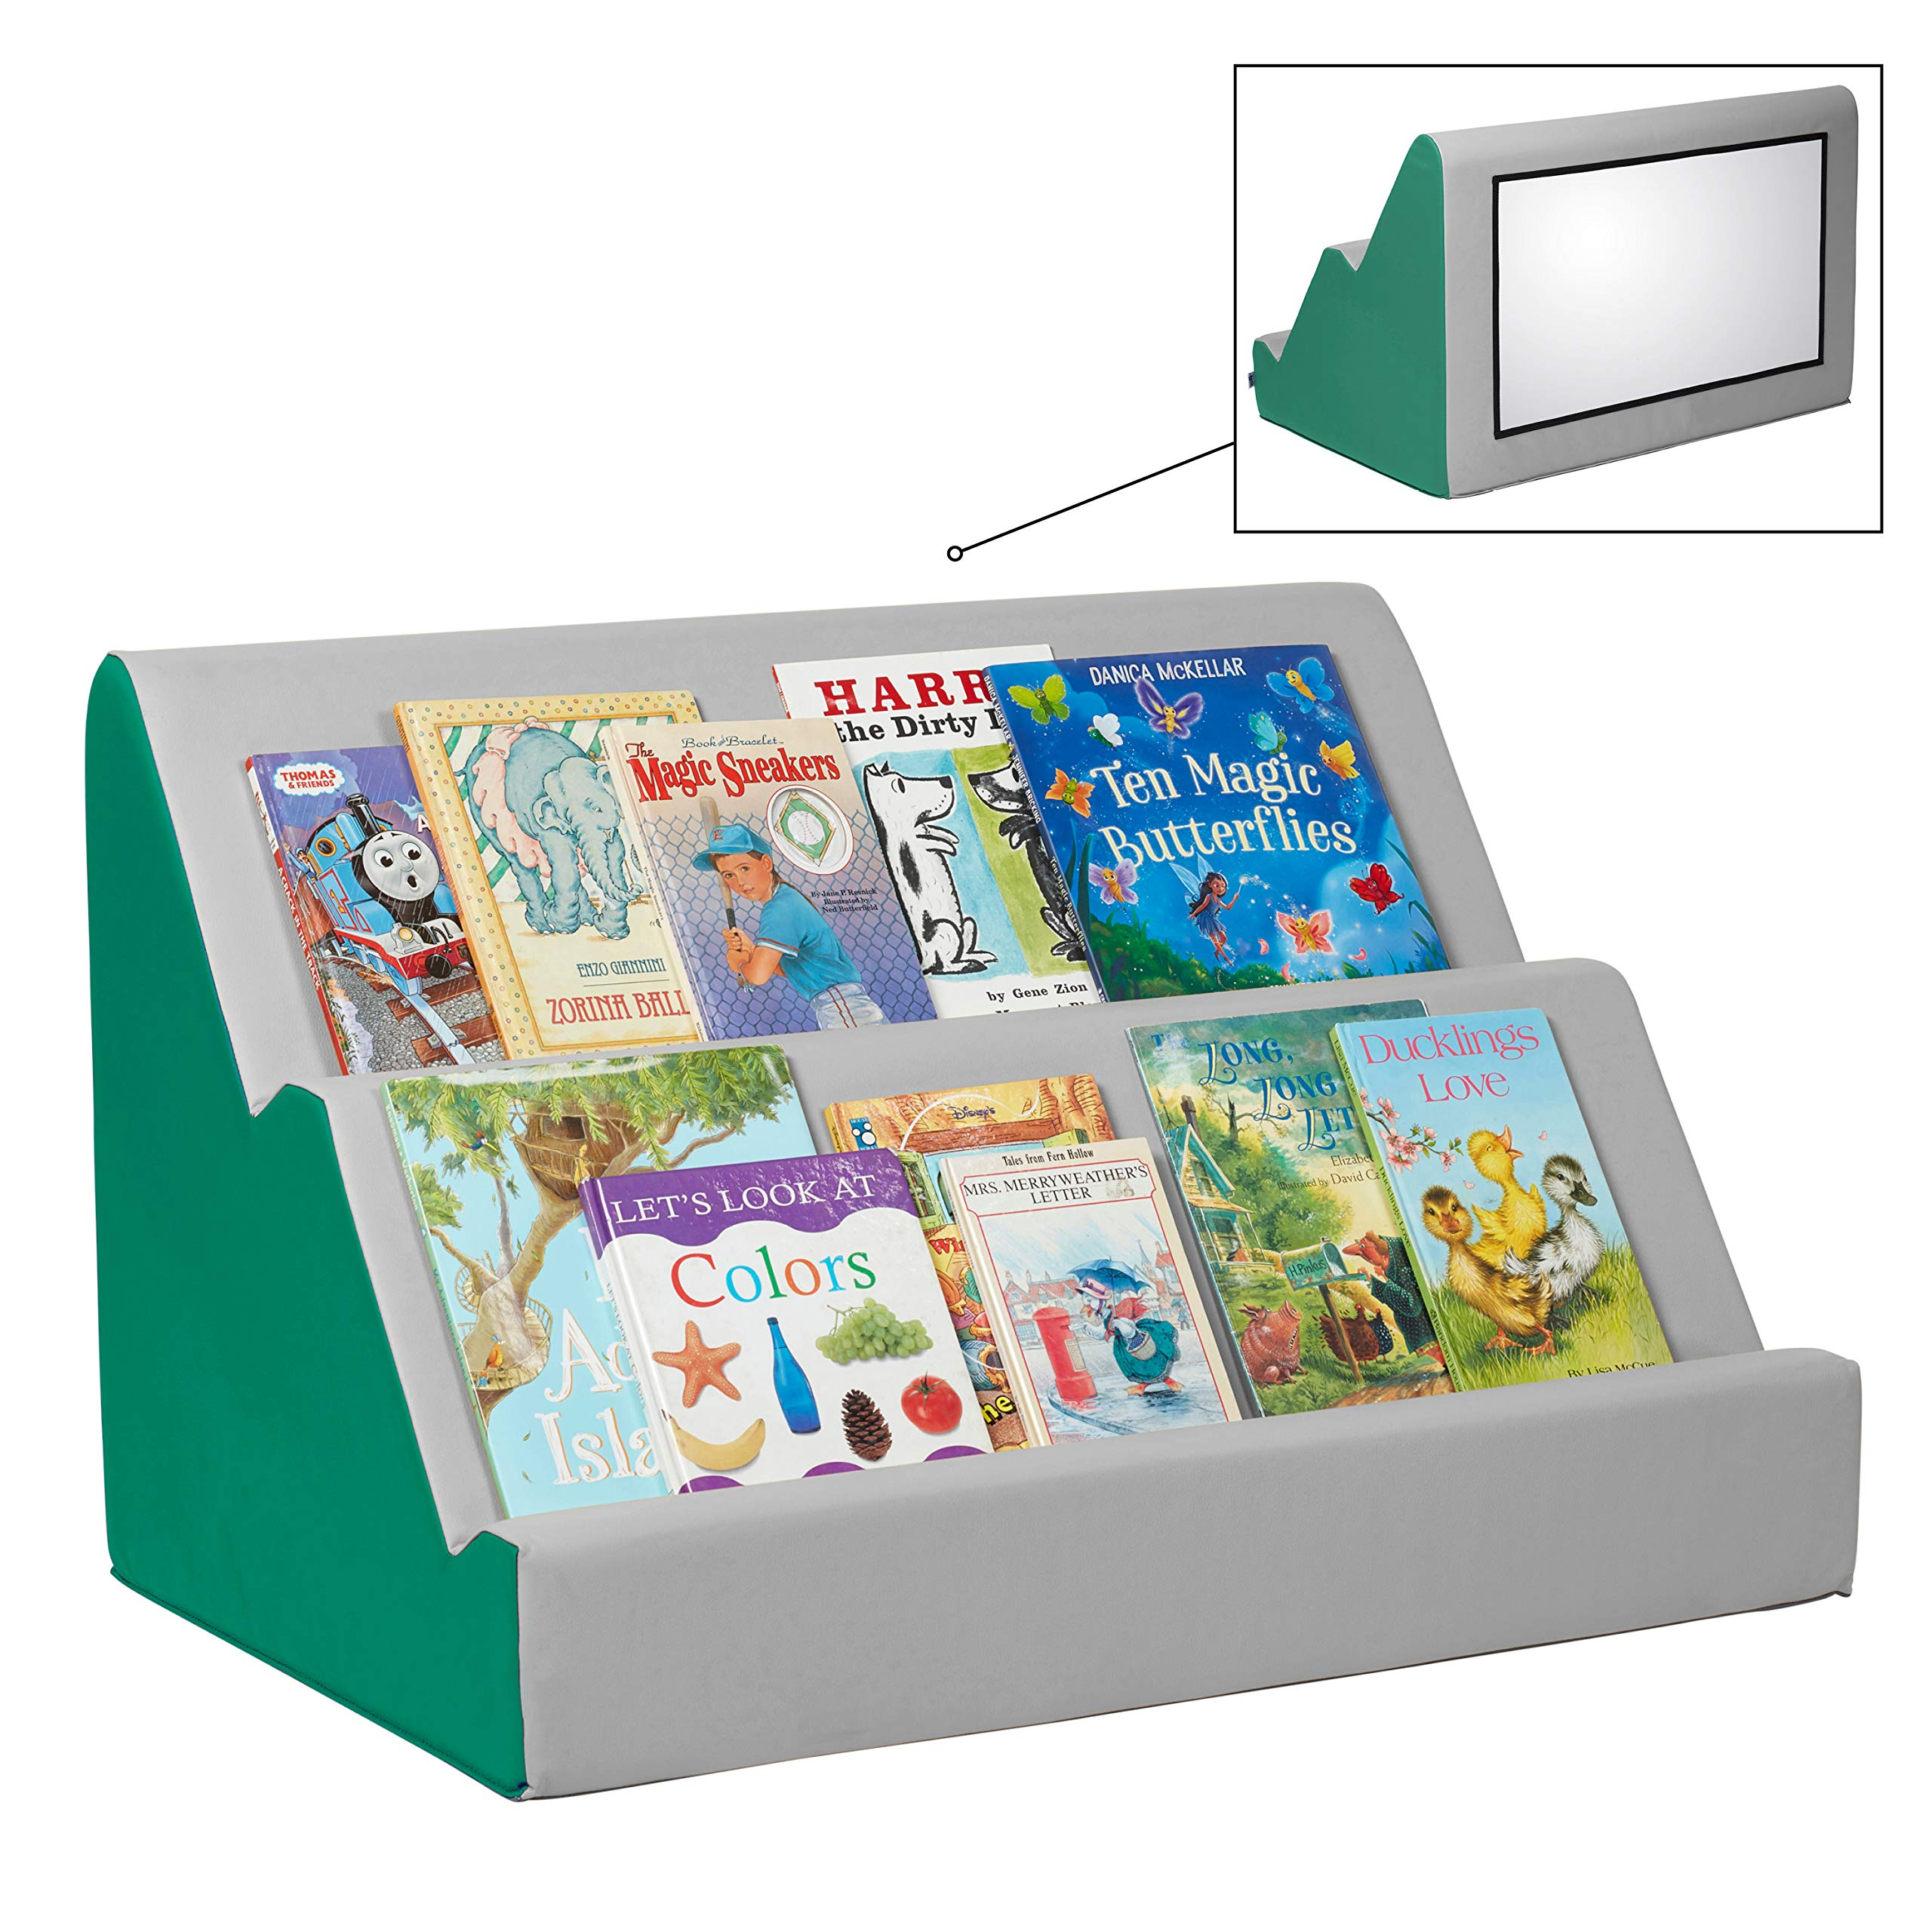 FDP SoftScape Book Buddy with Shatterproof Mirror - 2-Tier Toddler Bookshelf for Bedrooms - Preschools & Early Classrooms - Emerald/Light Gray by Factory Direct Partners